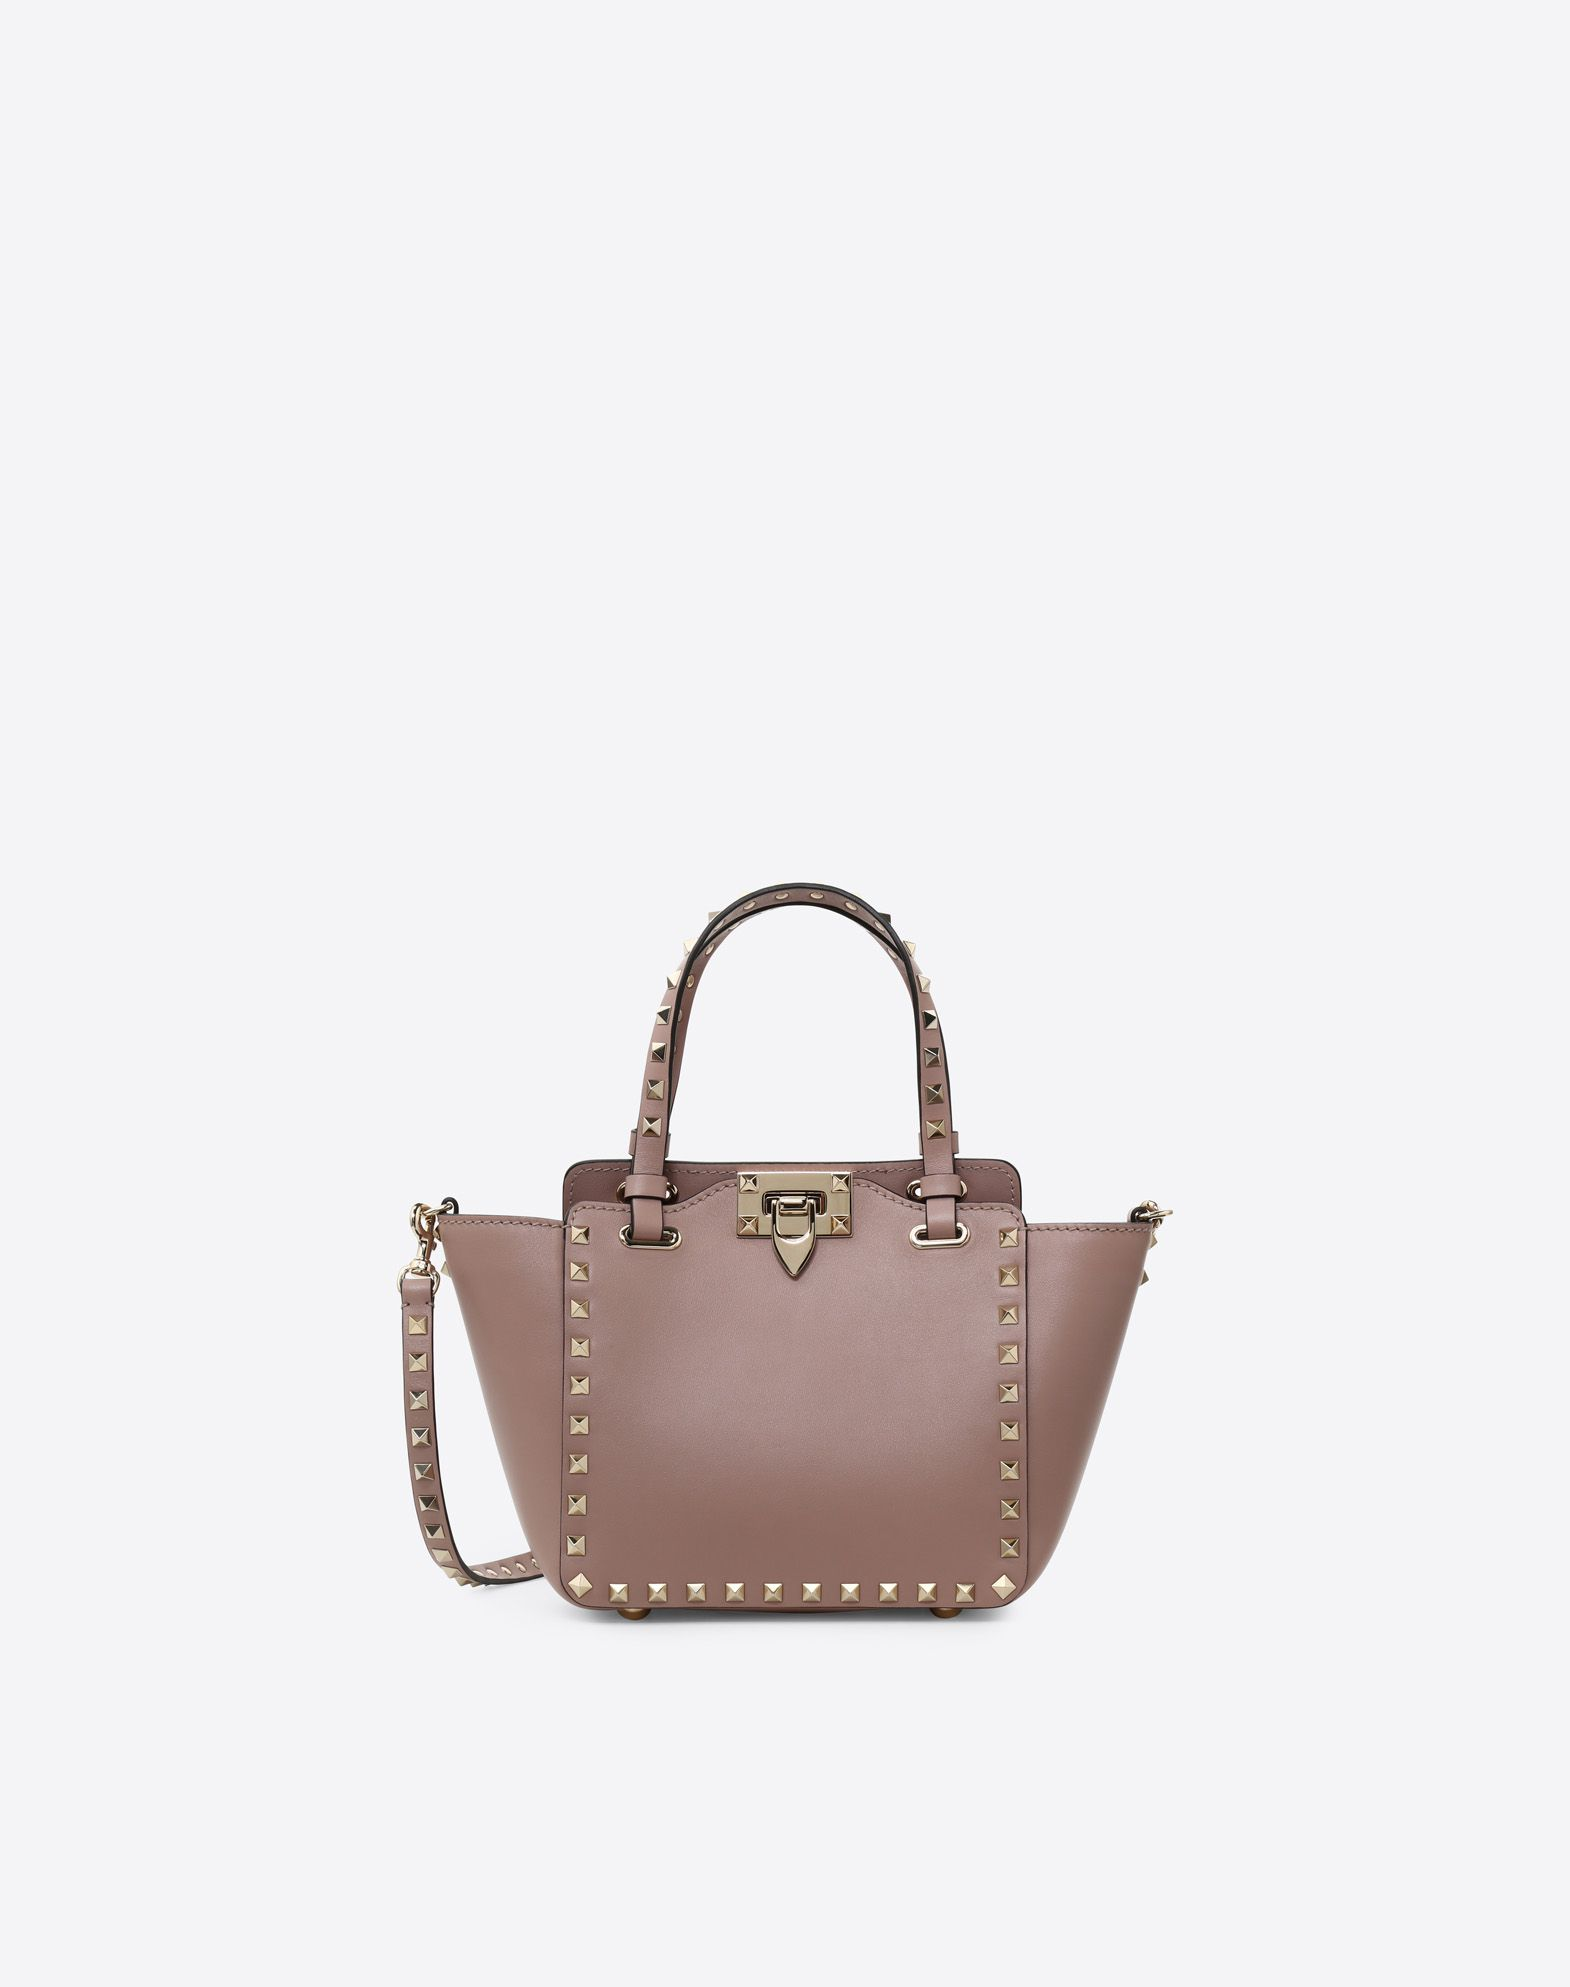 Mini Rockstud bag